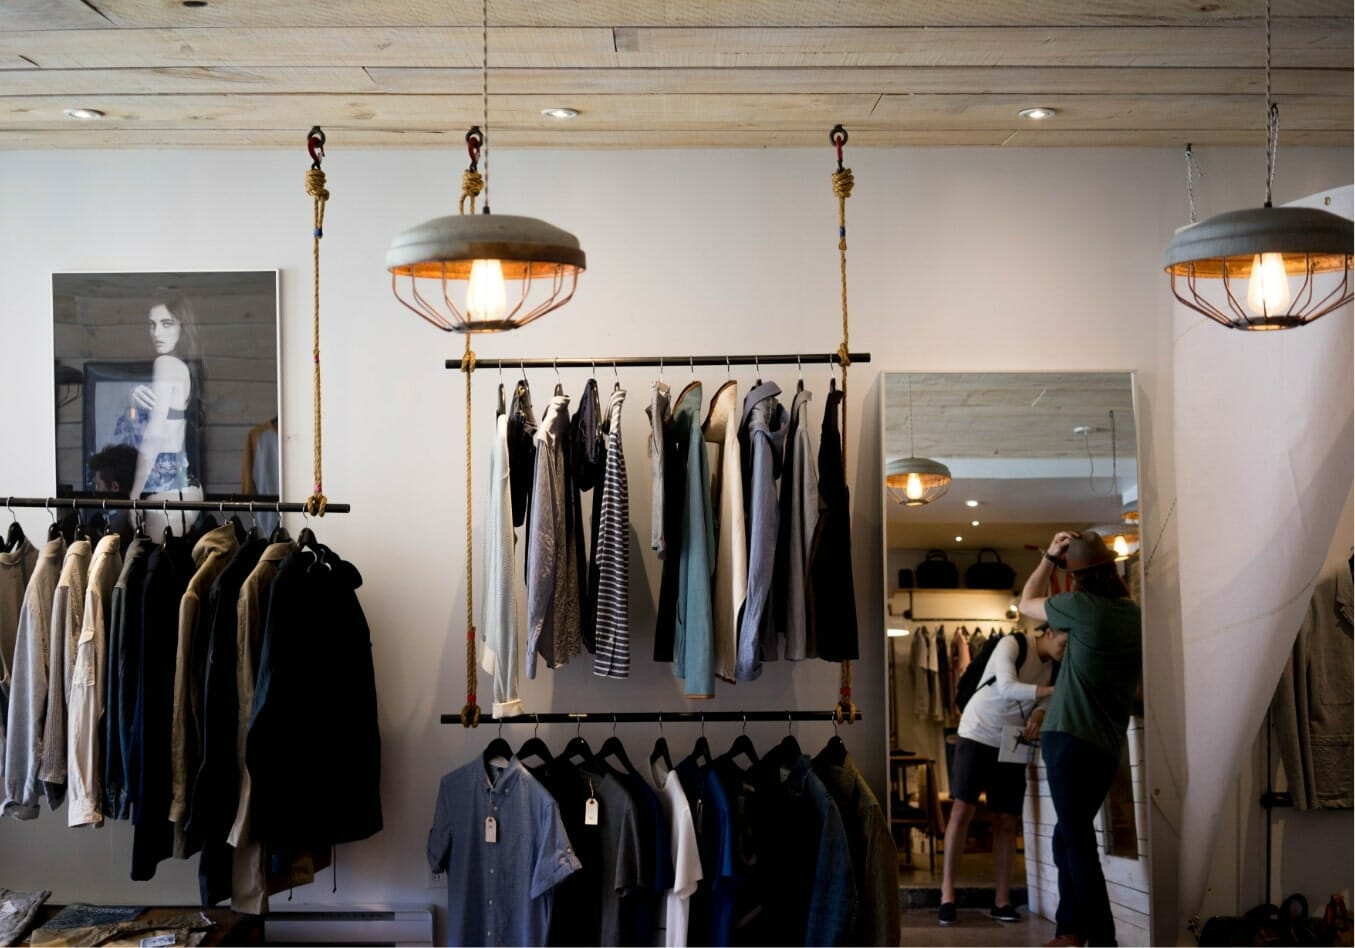 Clothes hanging on clothing racks